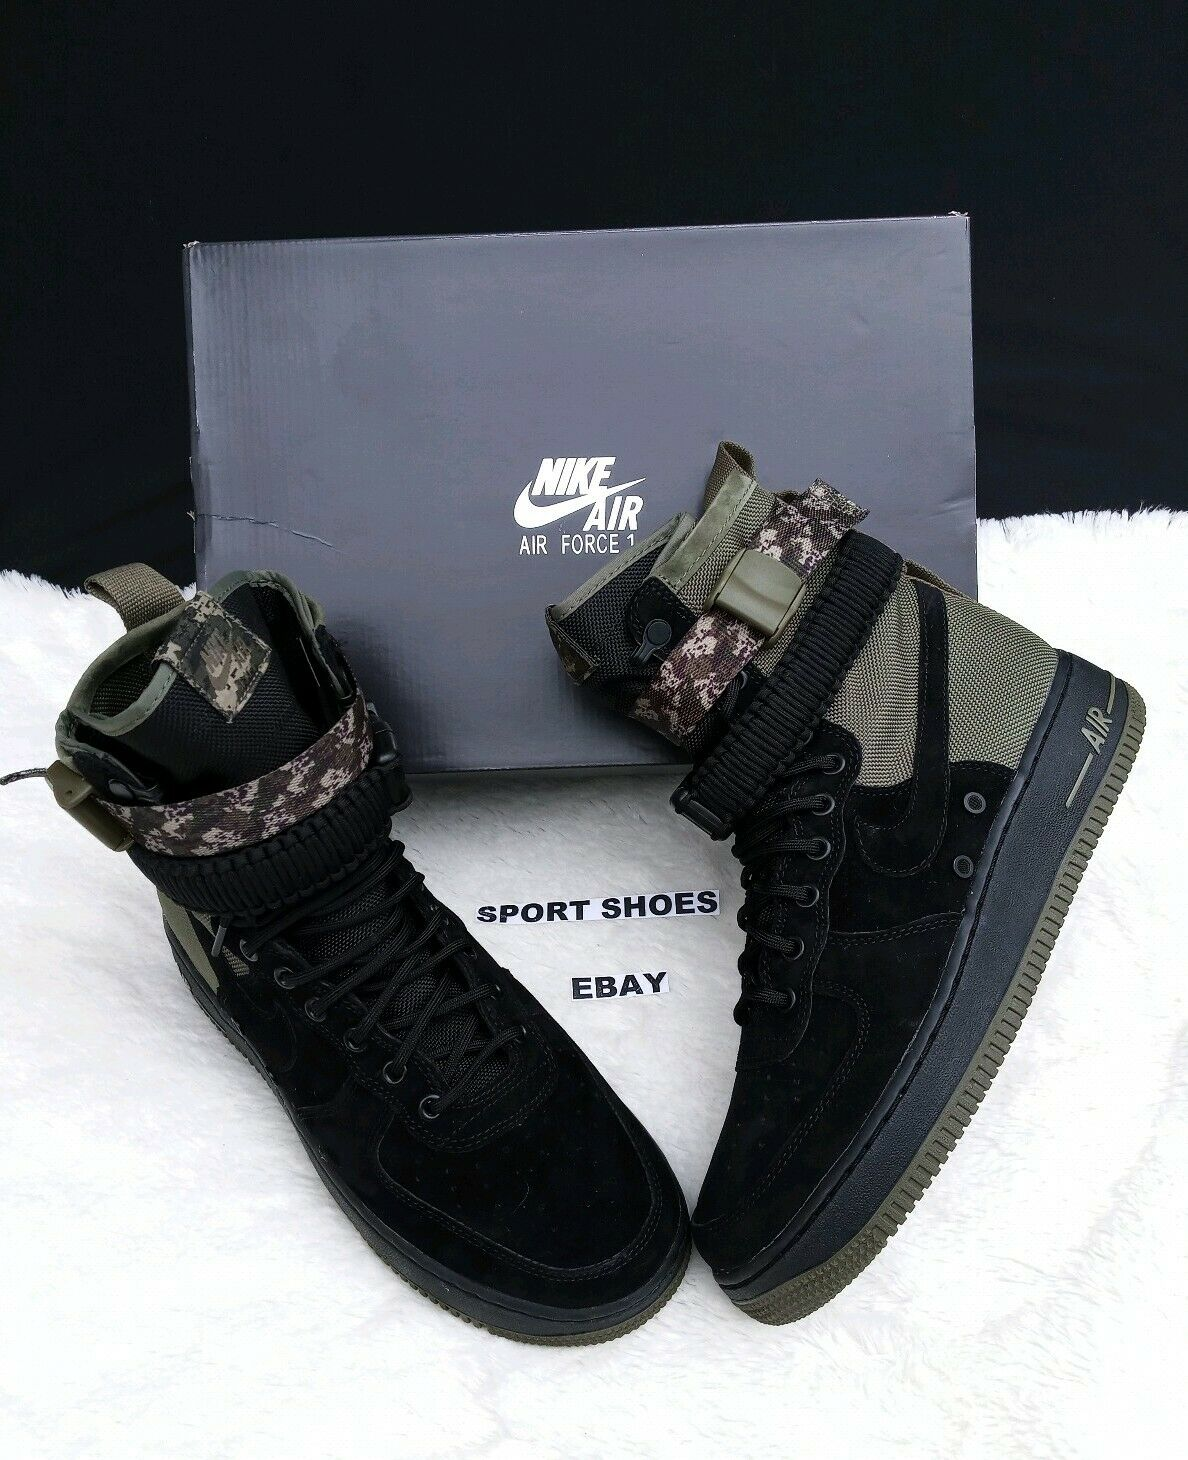 SIZE 9.5 MEN'S NIKE 864024 004 SF AF1 AIR FORCE ONE BLACK CAMO BOOTS SNEAKERS